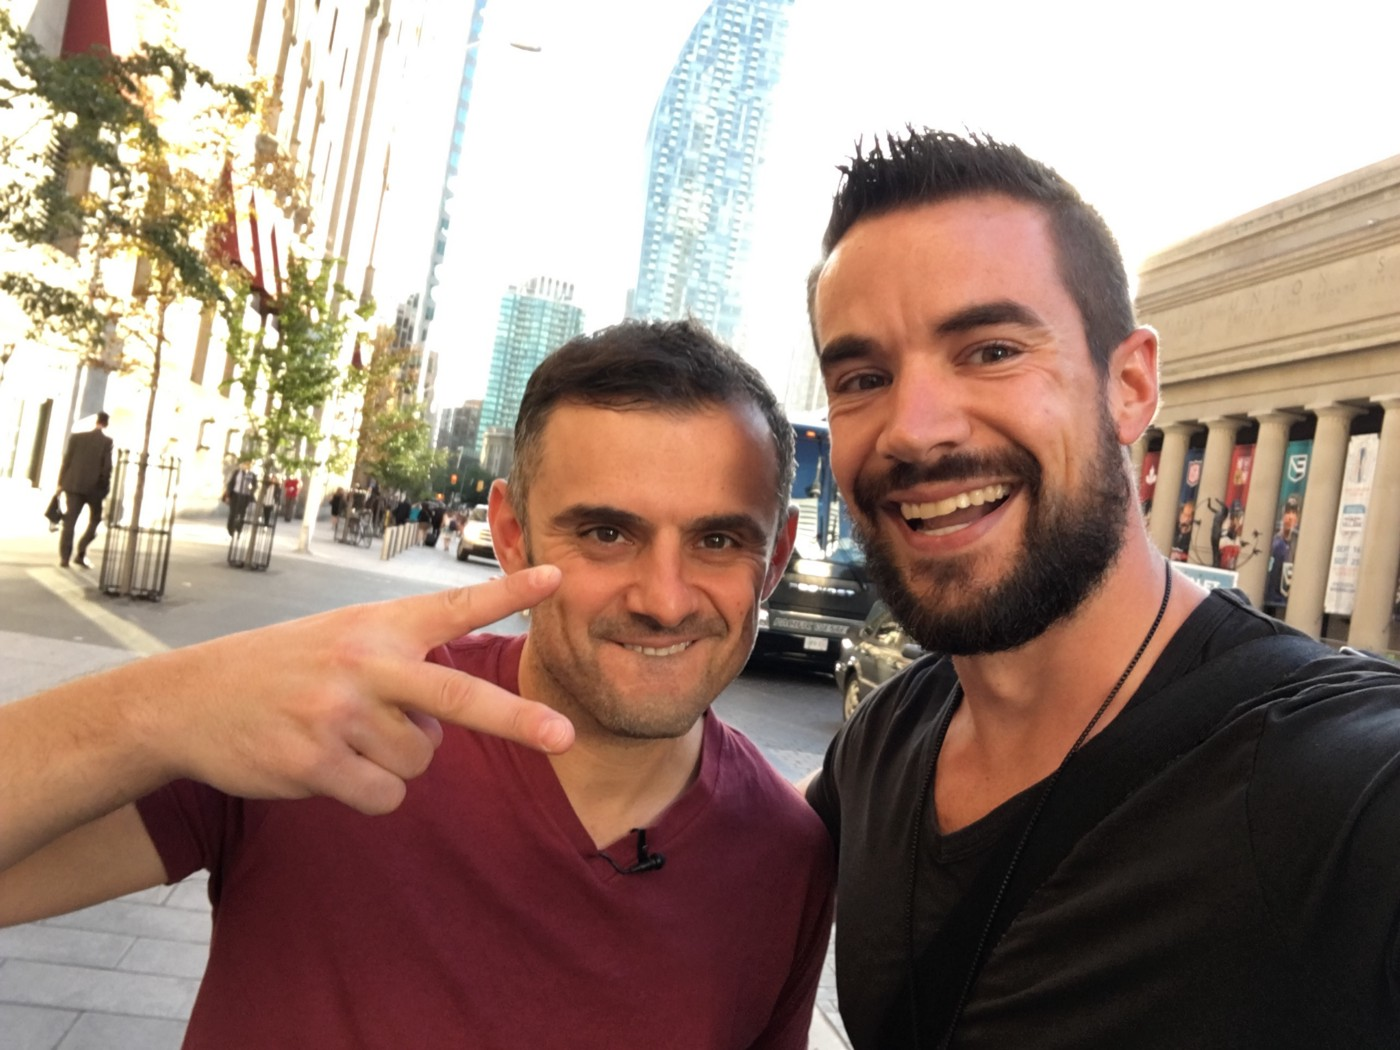 Meeting Gary Vee in front of the Fairmont Hotel in 2017.